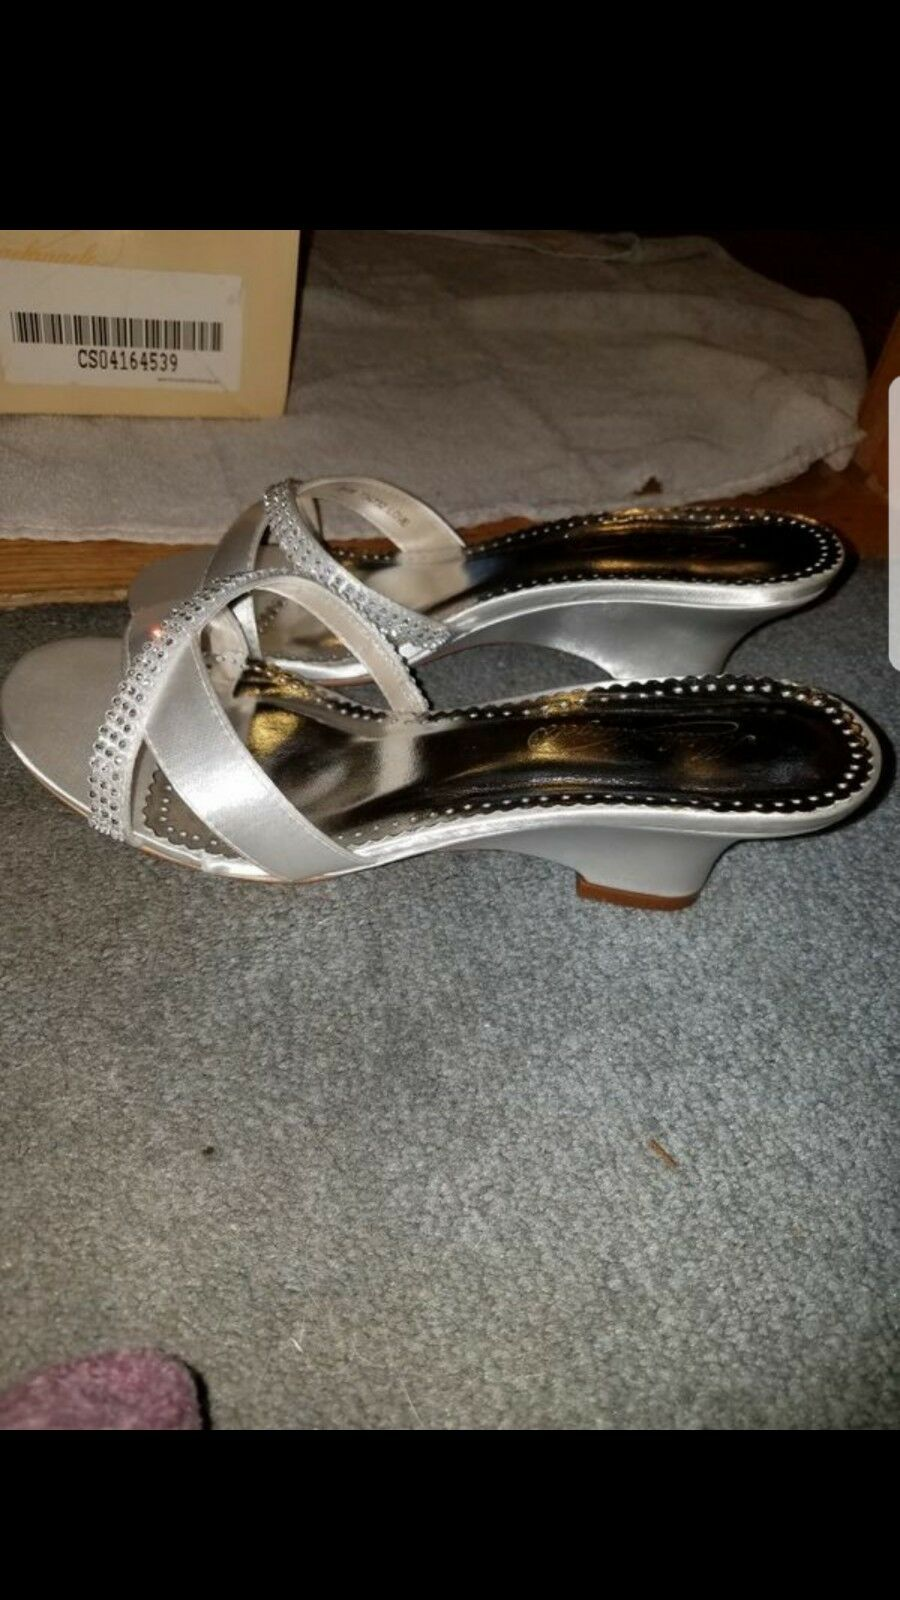 brand new David's Bridal shoes size 7 and a half white